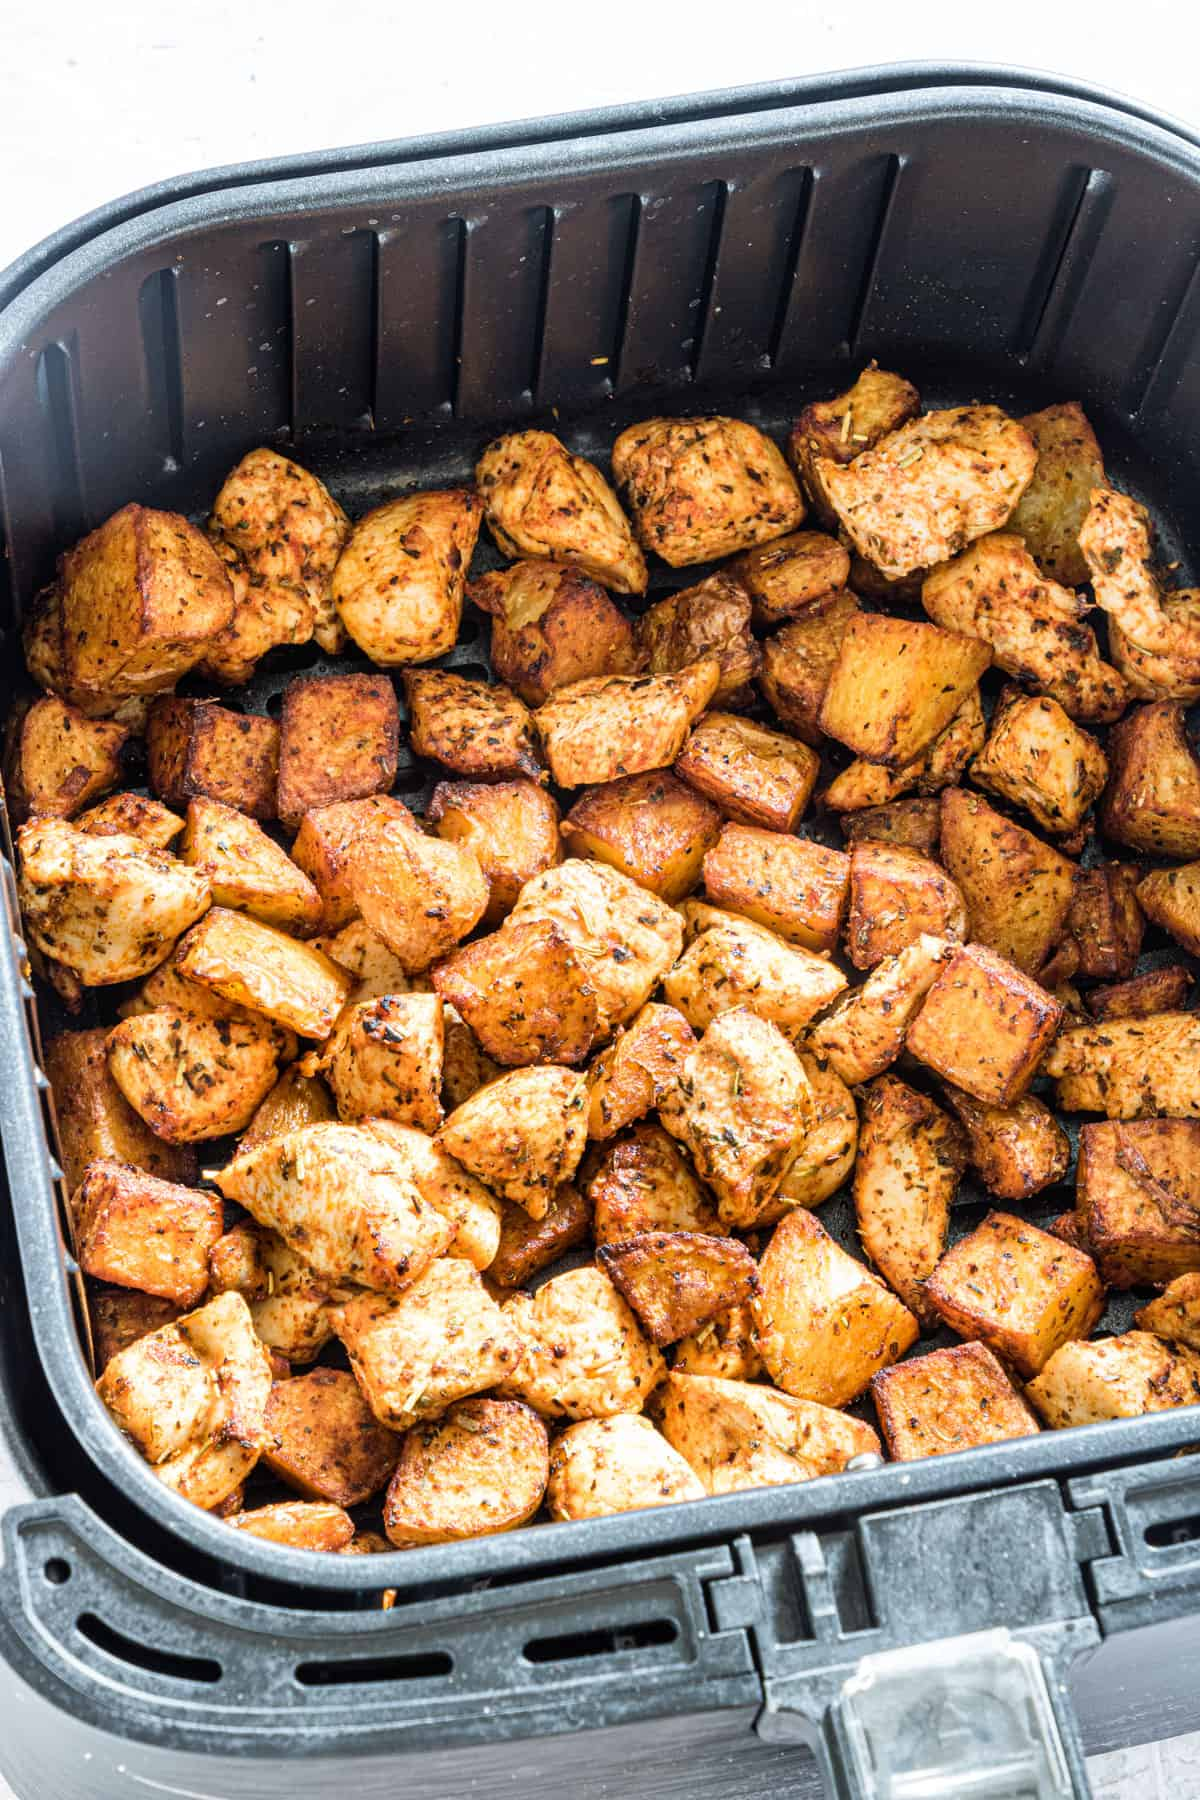 close up view of chicken and potatoes in the air fryer basket